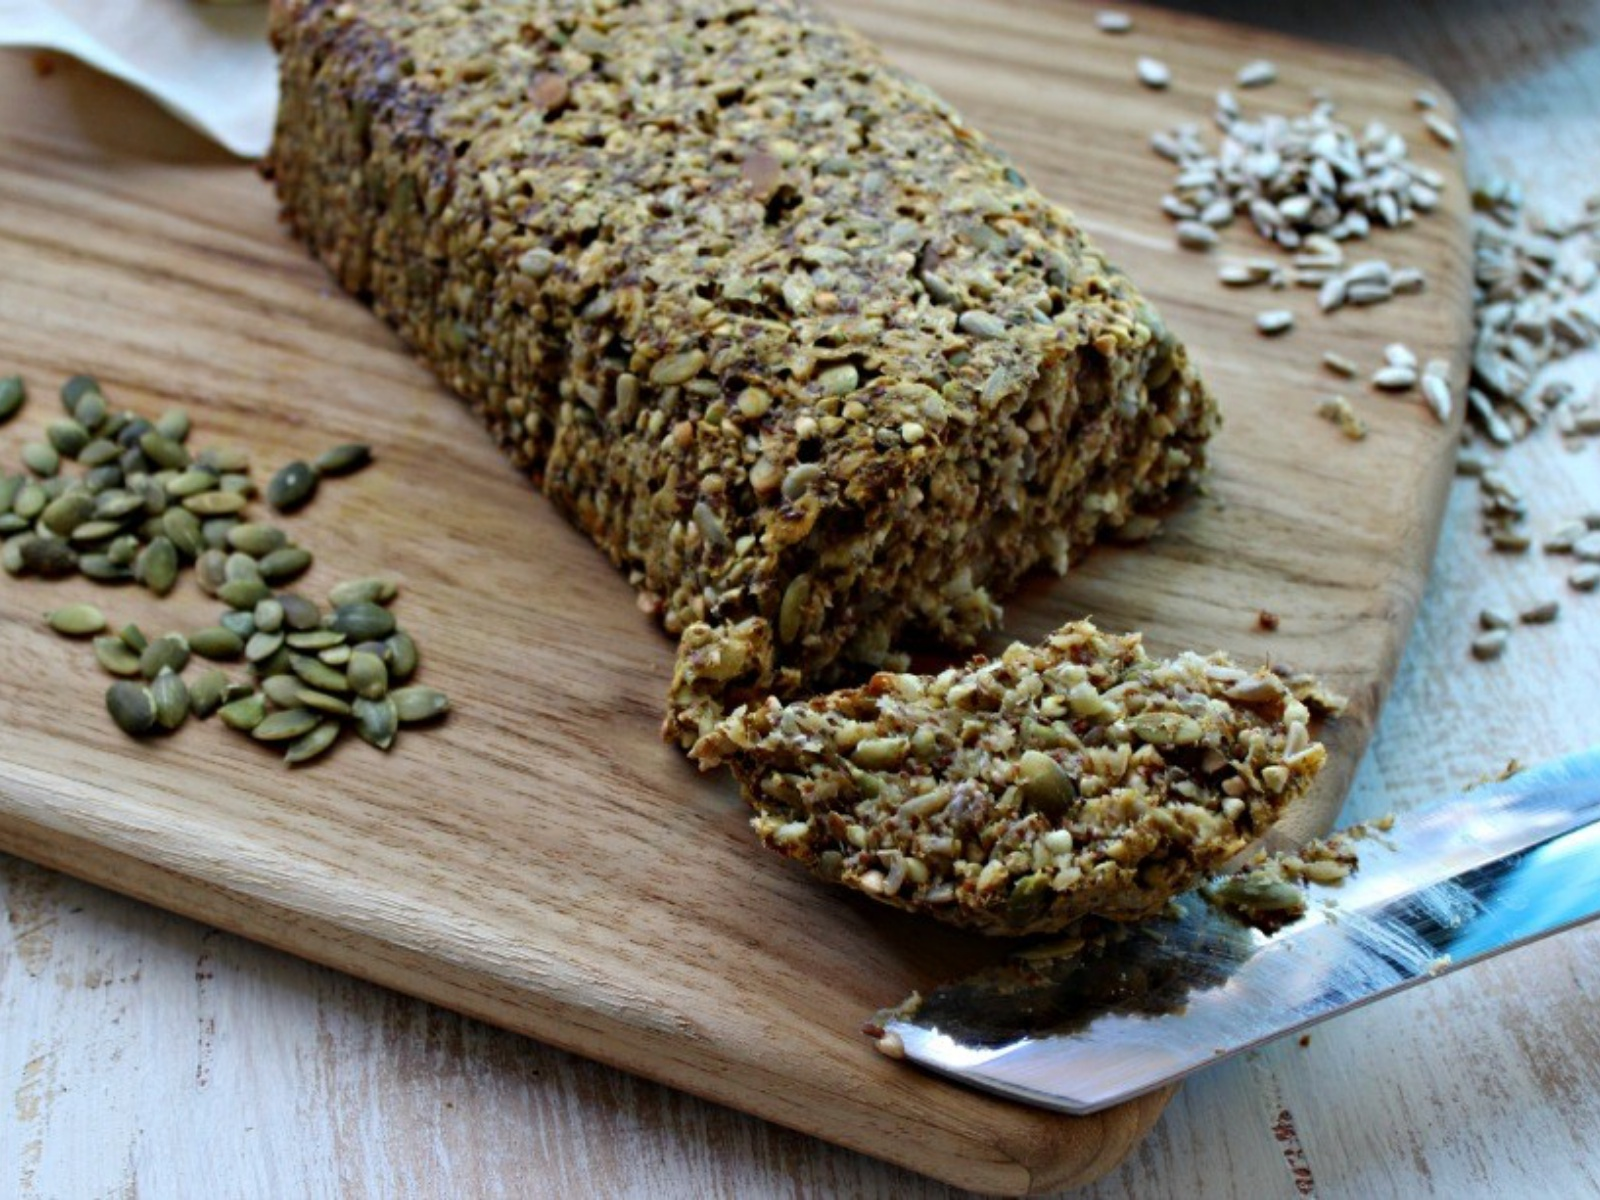 Gluten-free bread with pumpkin seeds